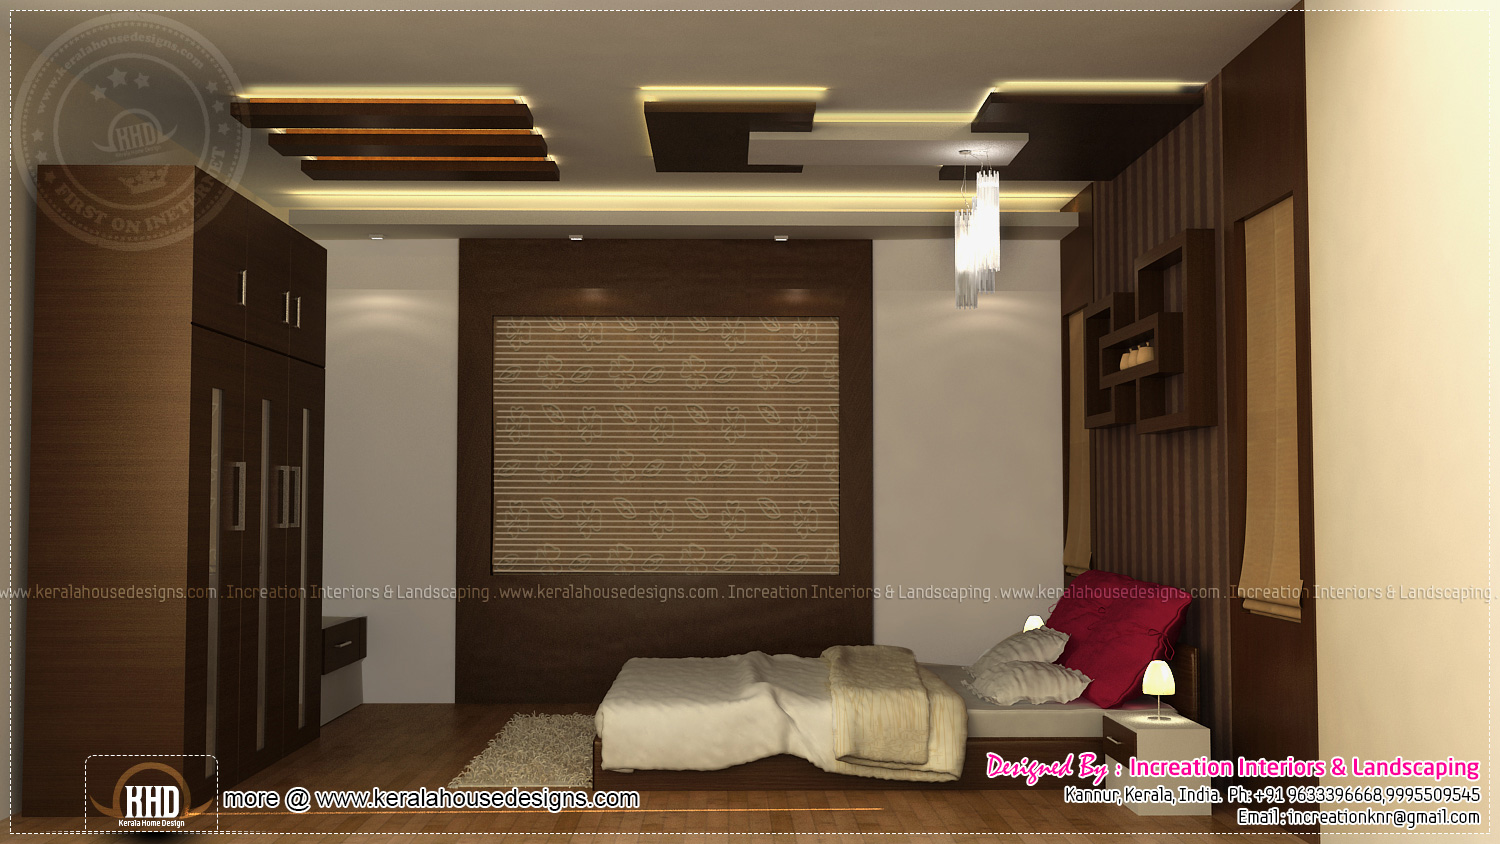 Interior designs by increation kannur kerala home for Bedroom interior designs gallery